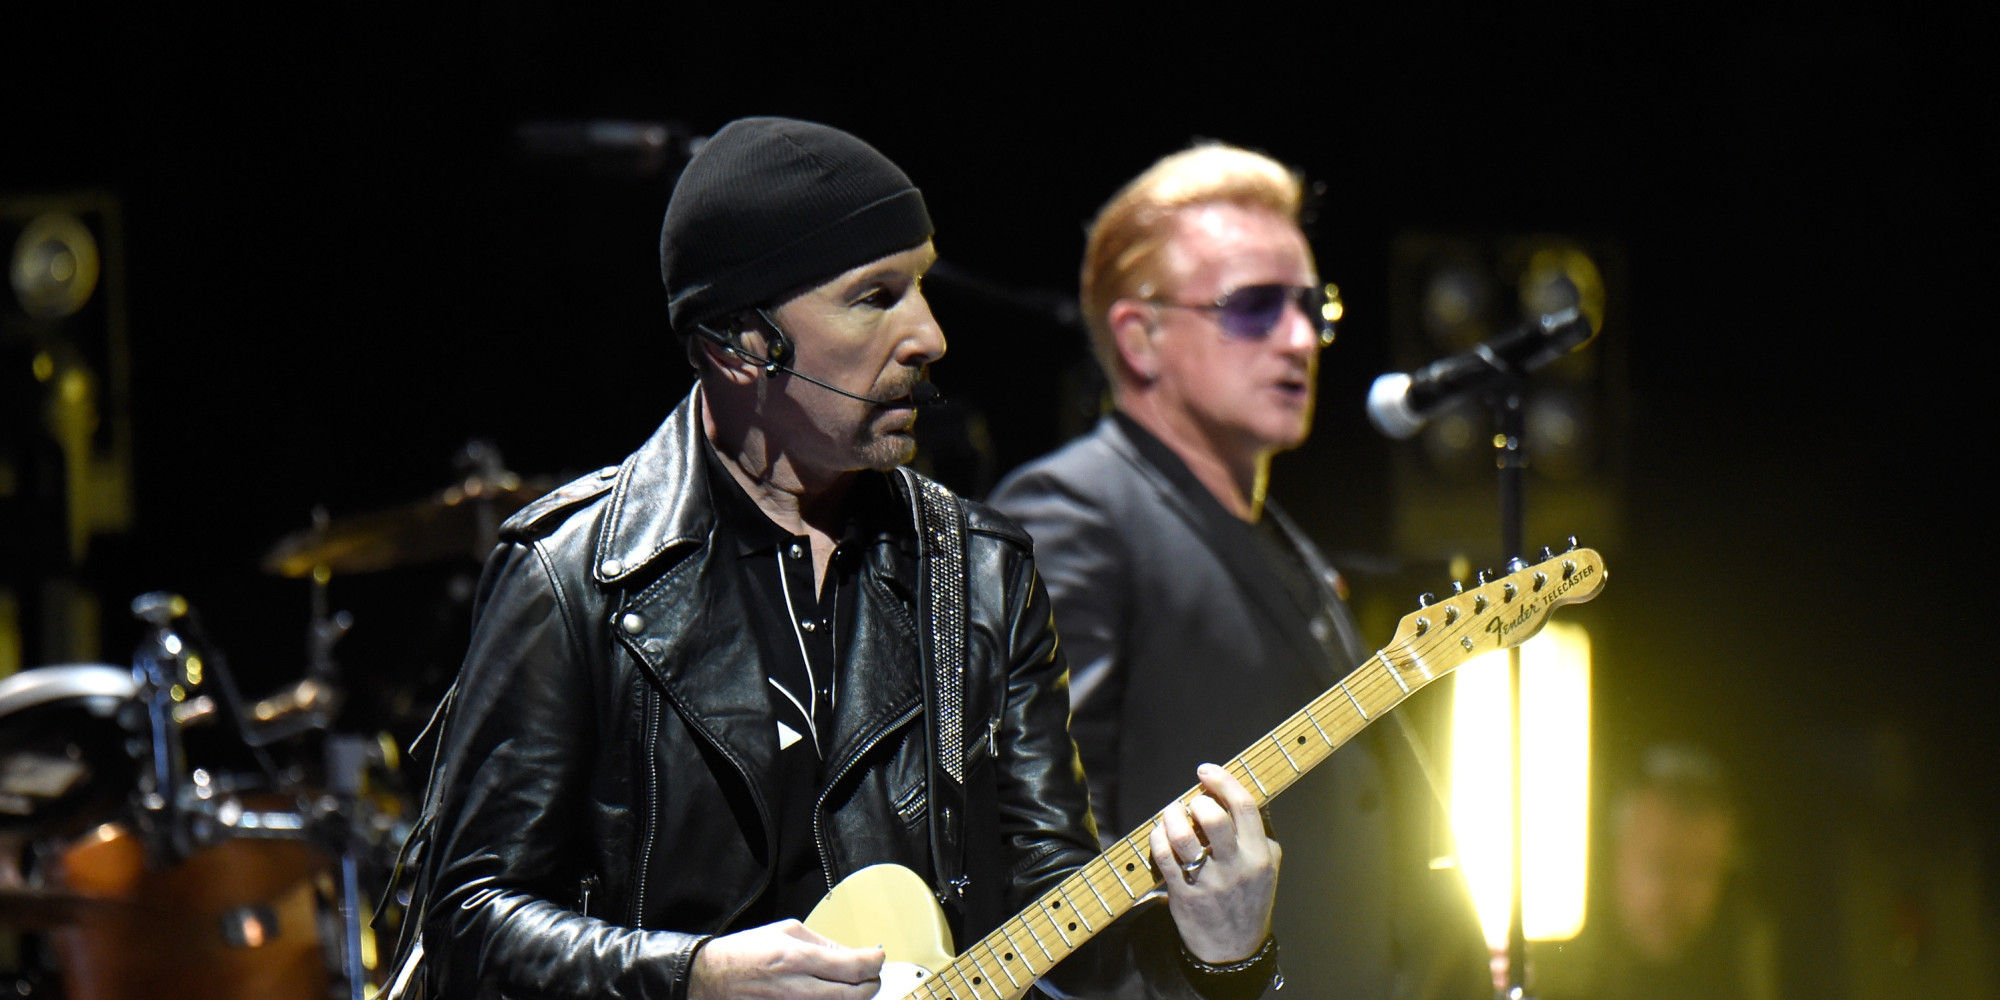 The Edge Falls Off Stage During U2 Concert And It's Hilarious, Unfortunately | HuffPost